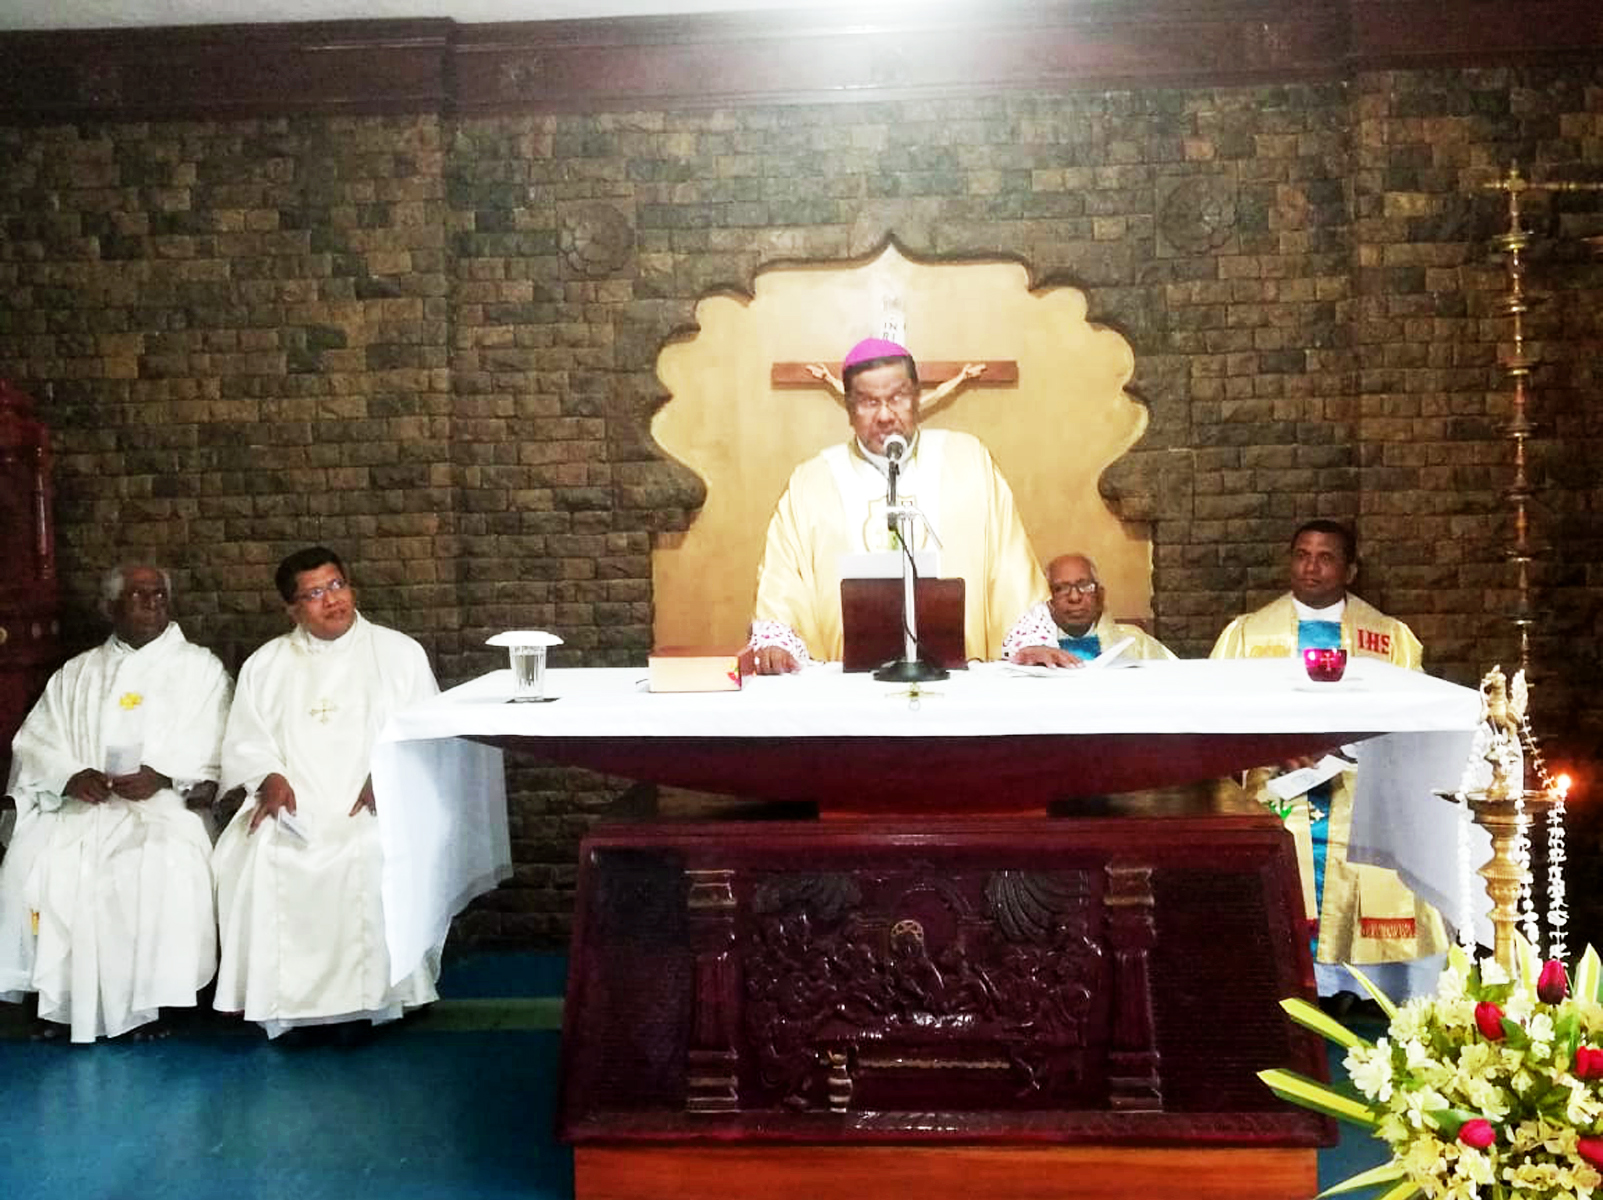 Papal Approbation of the Congregation